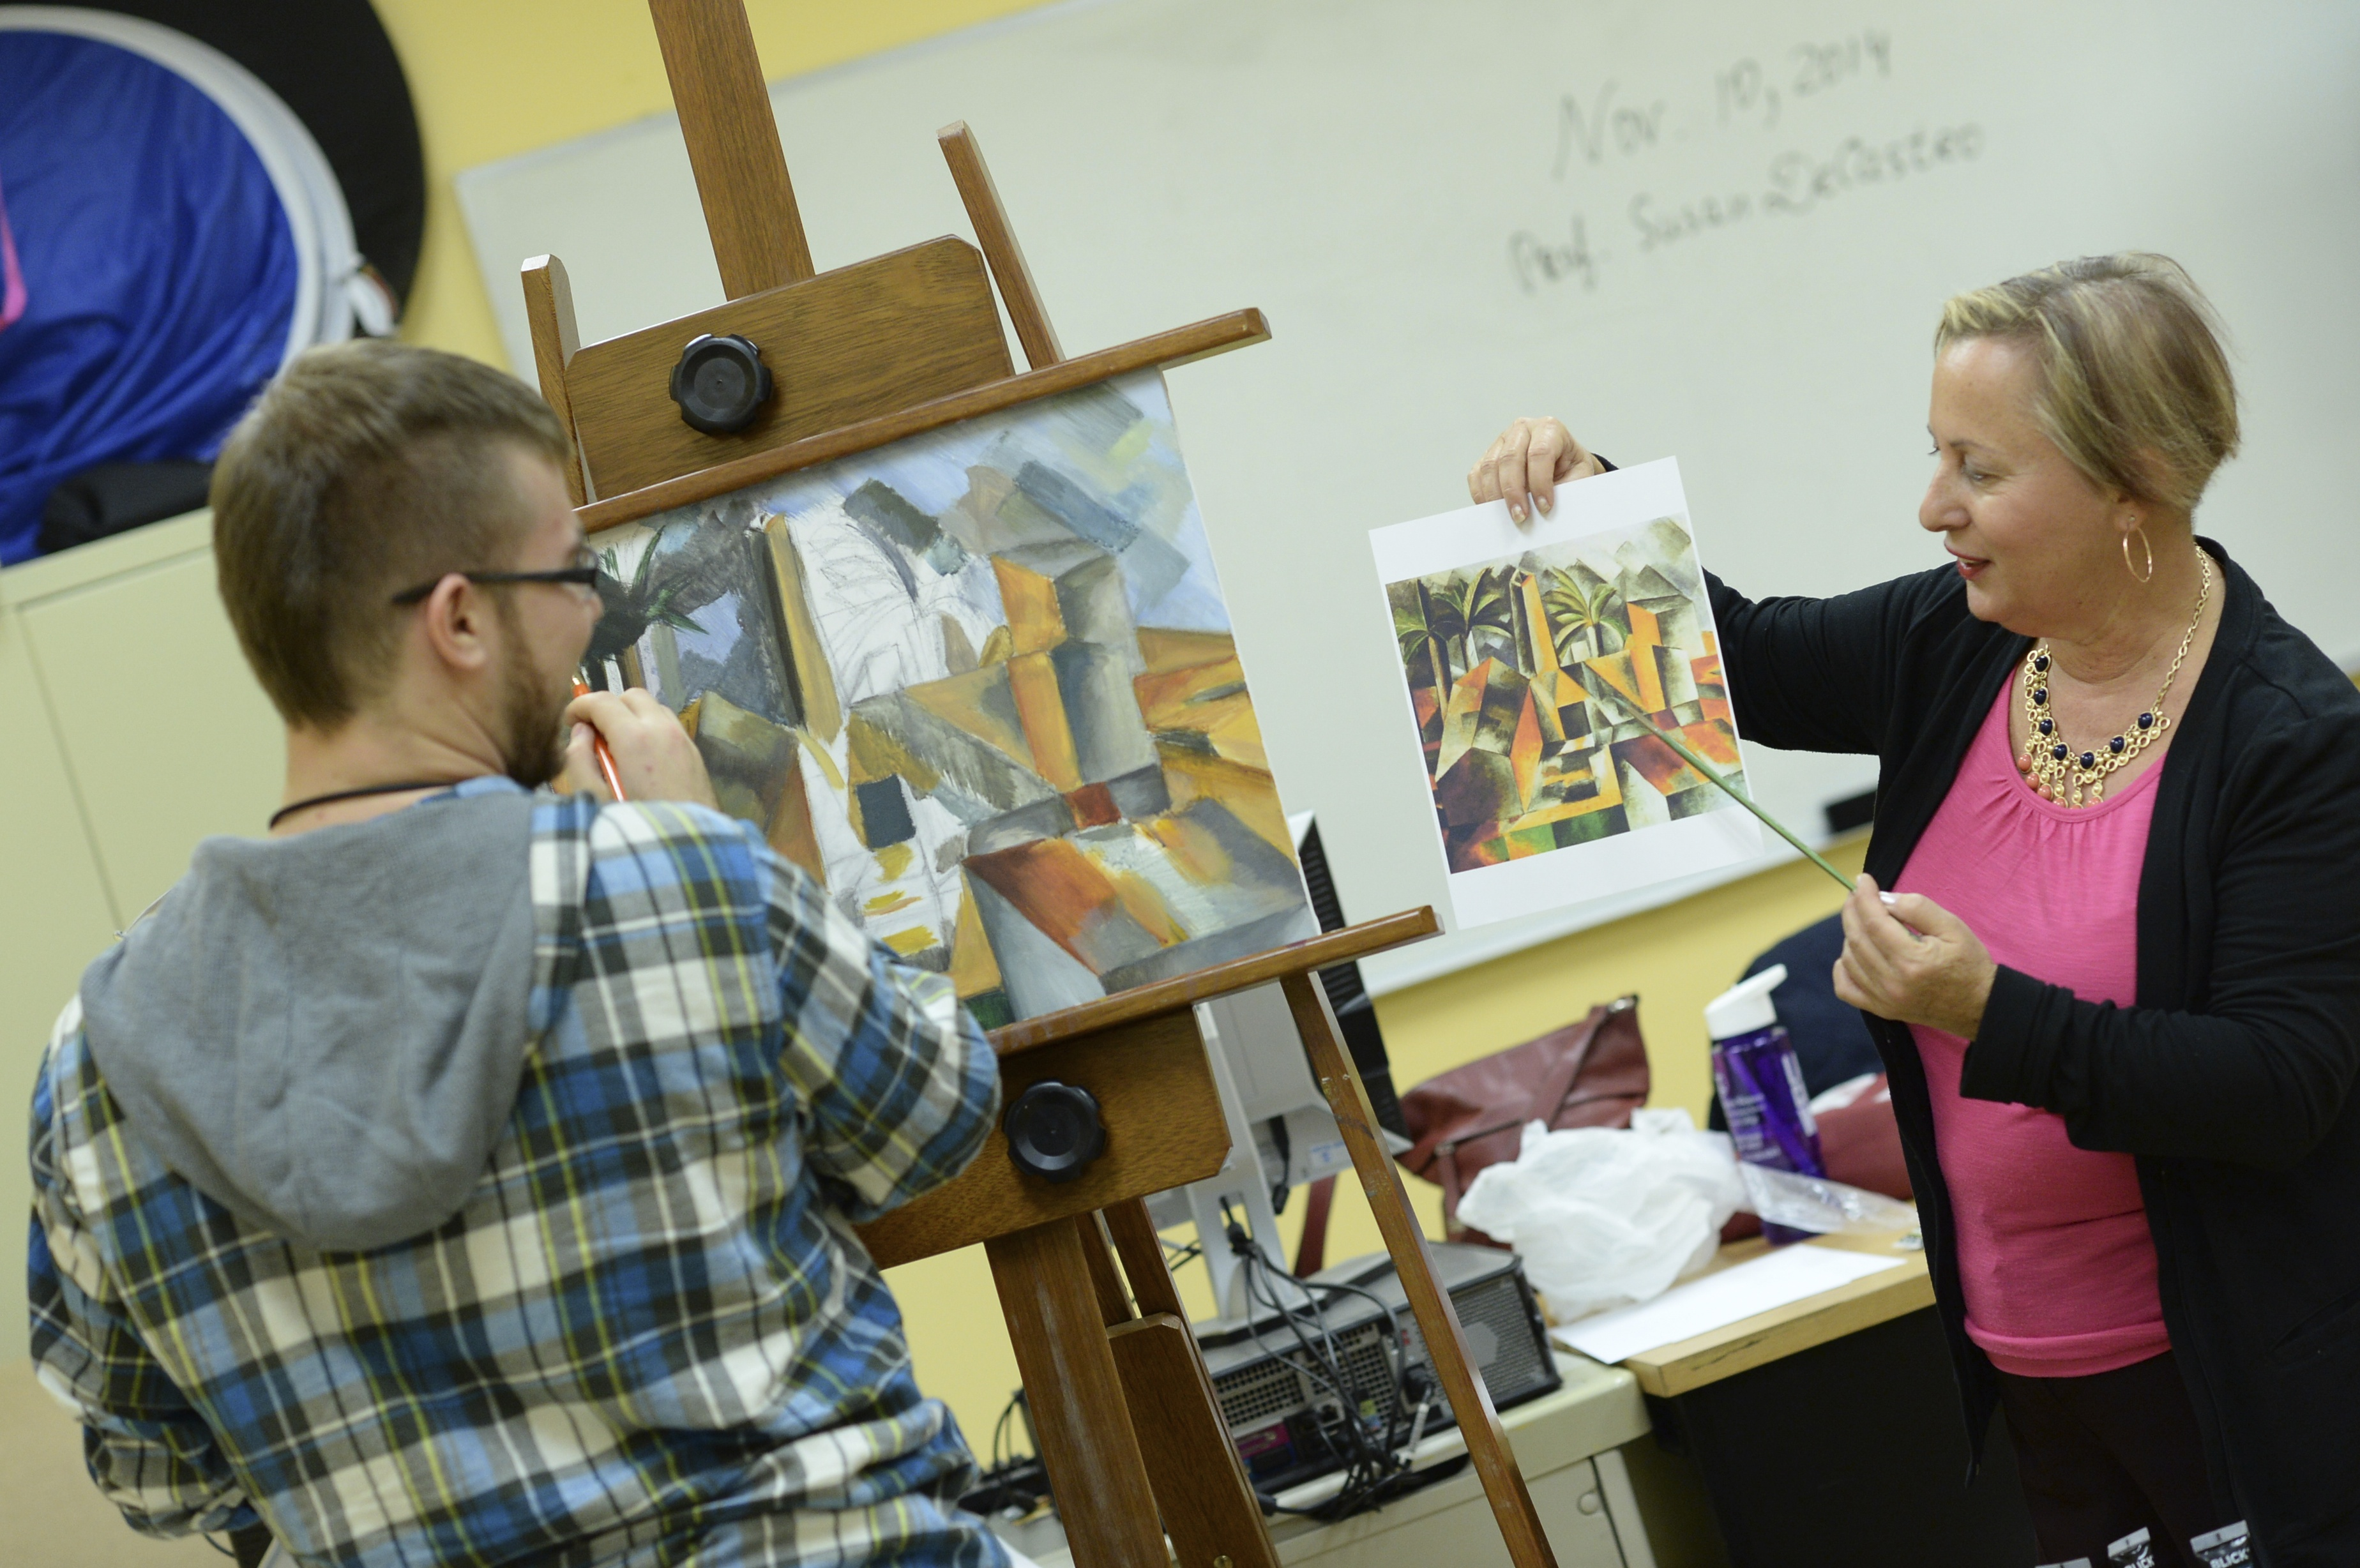 Professor Susan De Castro, holding up a print of a Picasso cubist painting, helps one of her students during class. The student is standing in front of an easel, working on his own cubist painting.